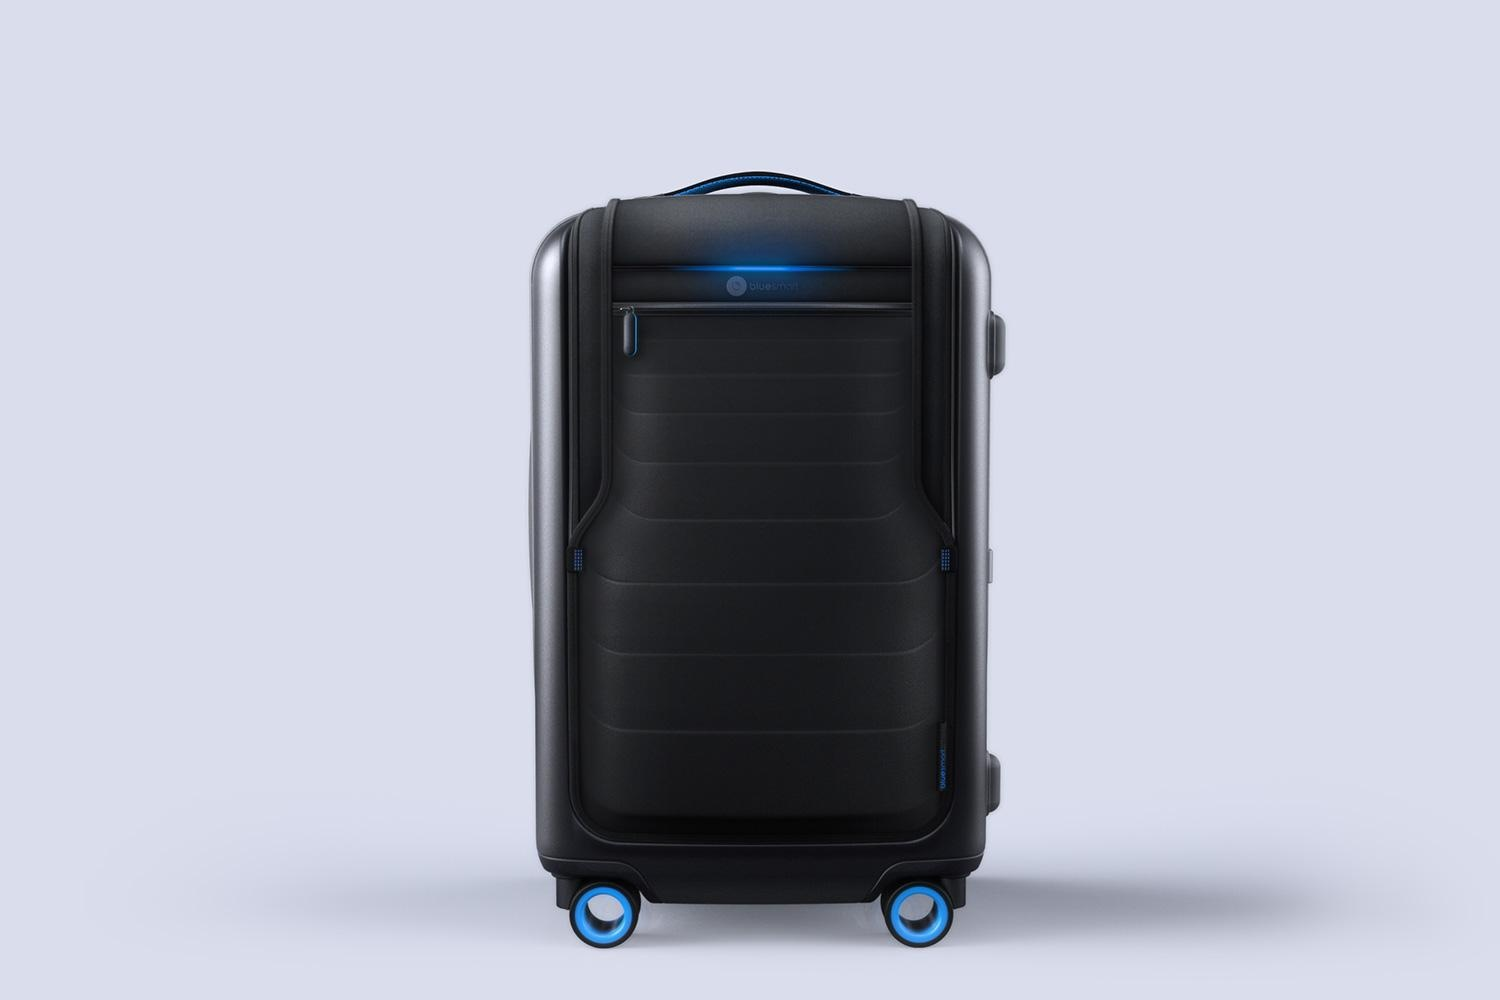 bluesmart-connected-suitcase-full-body-1500×1000